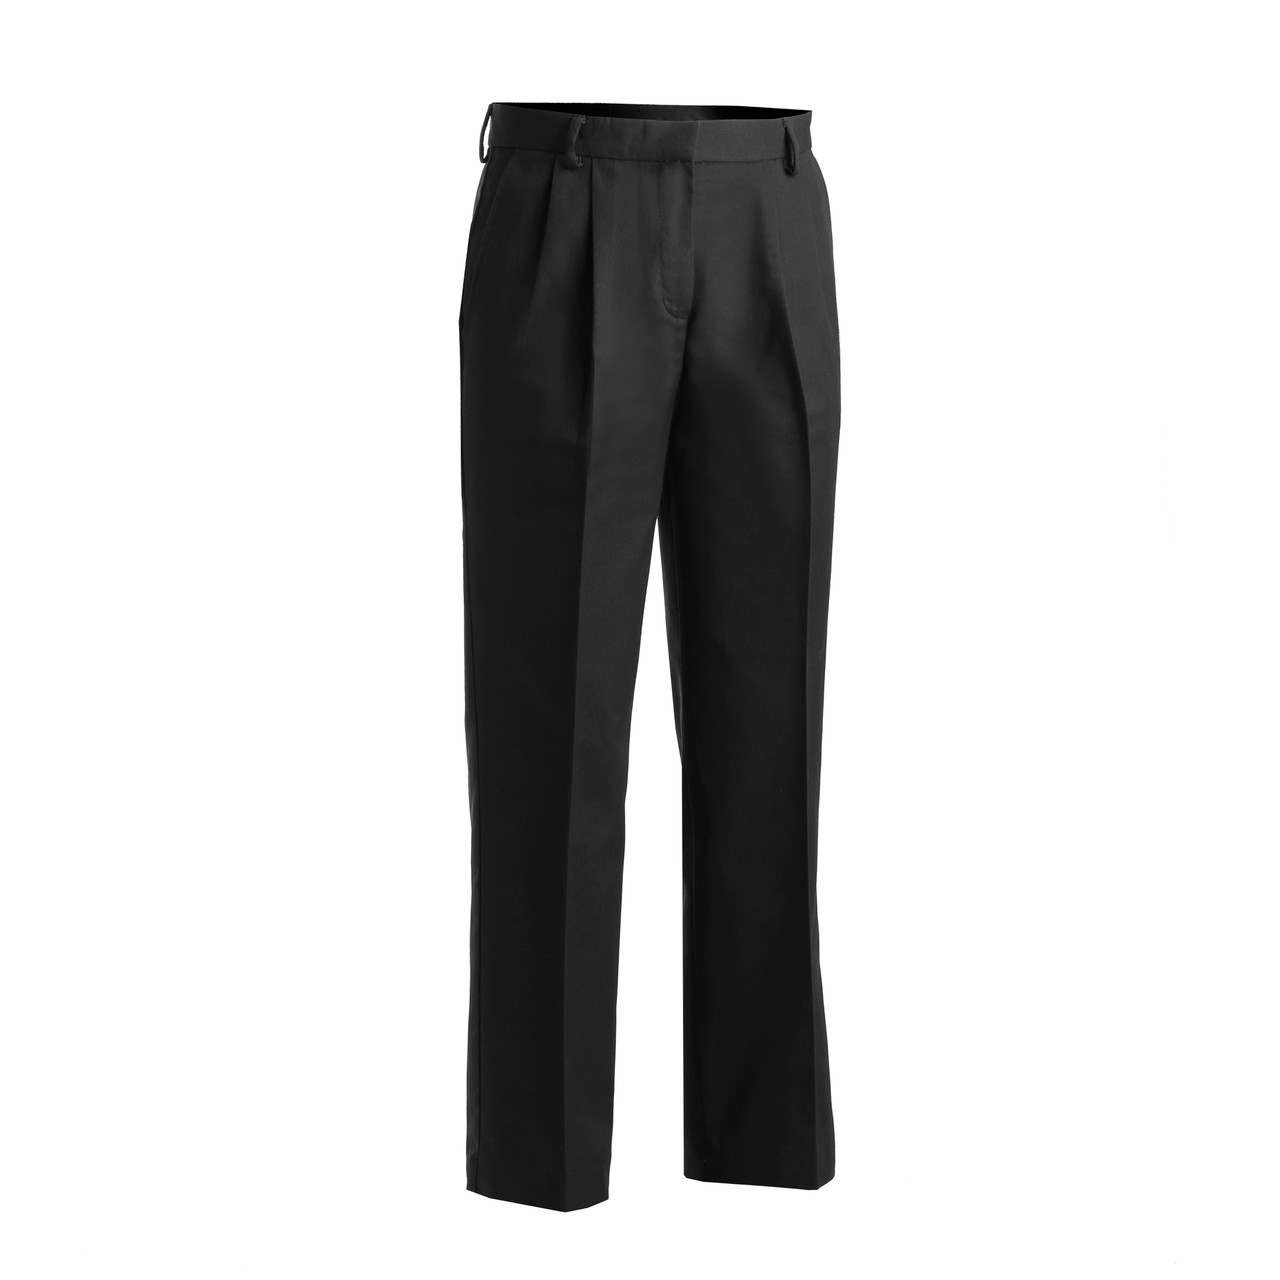 Women's Pleated Front Chino Pants